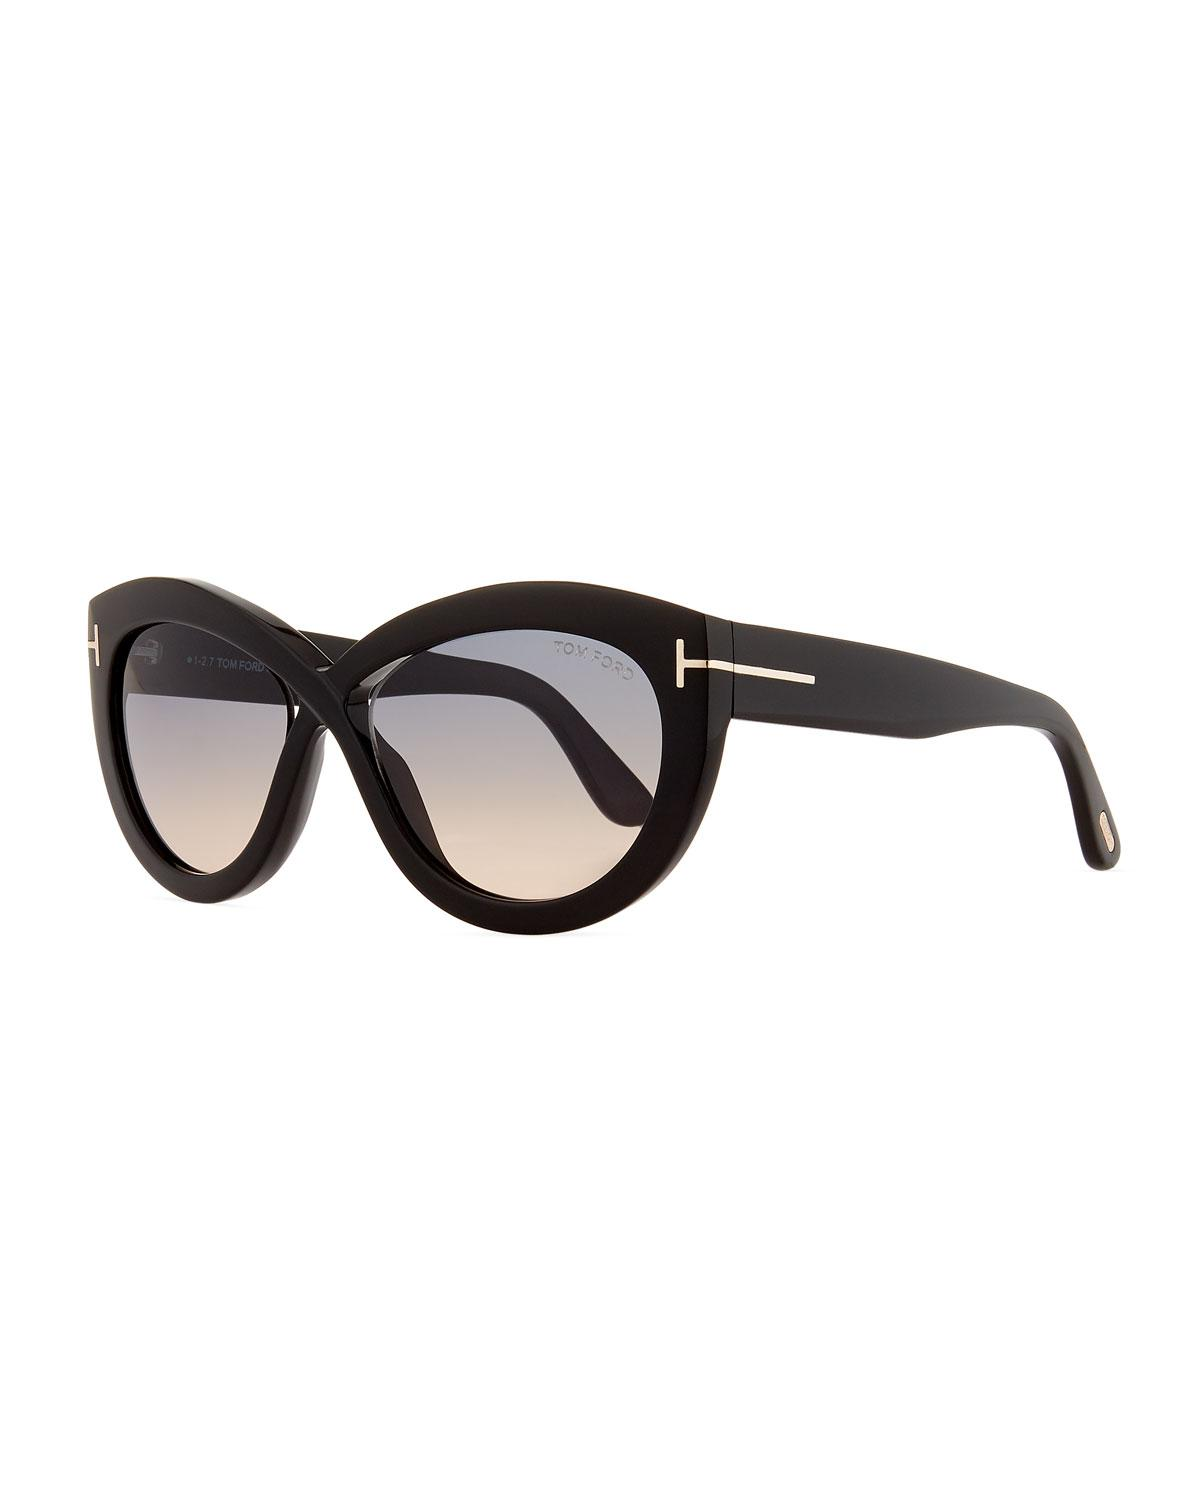 1810917dda9f Lyst - Tom Ford Diane Acetate Butterfly Sunglasses in Black